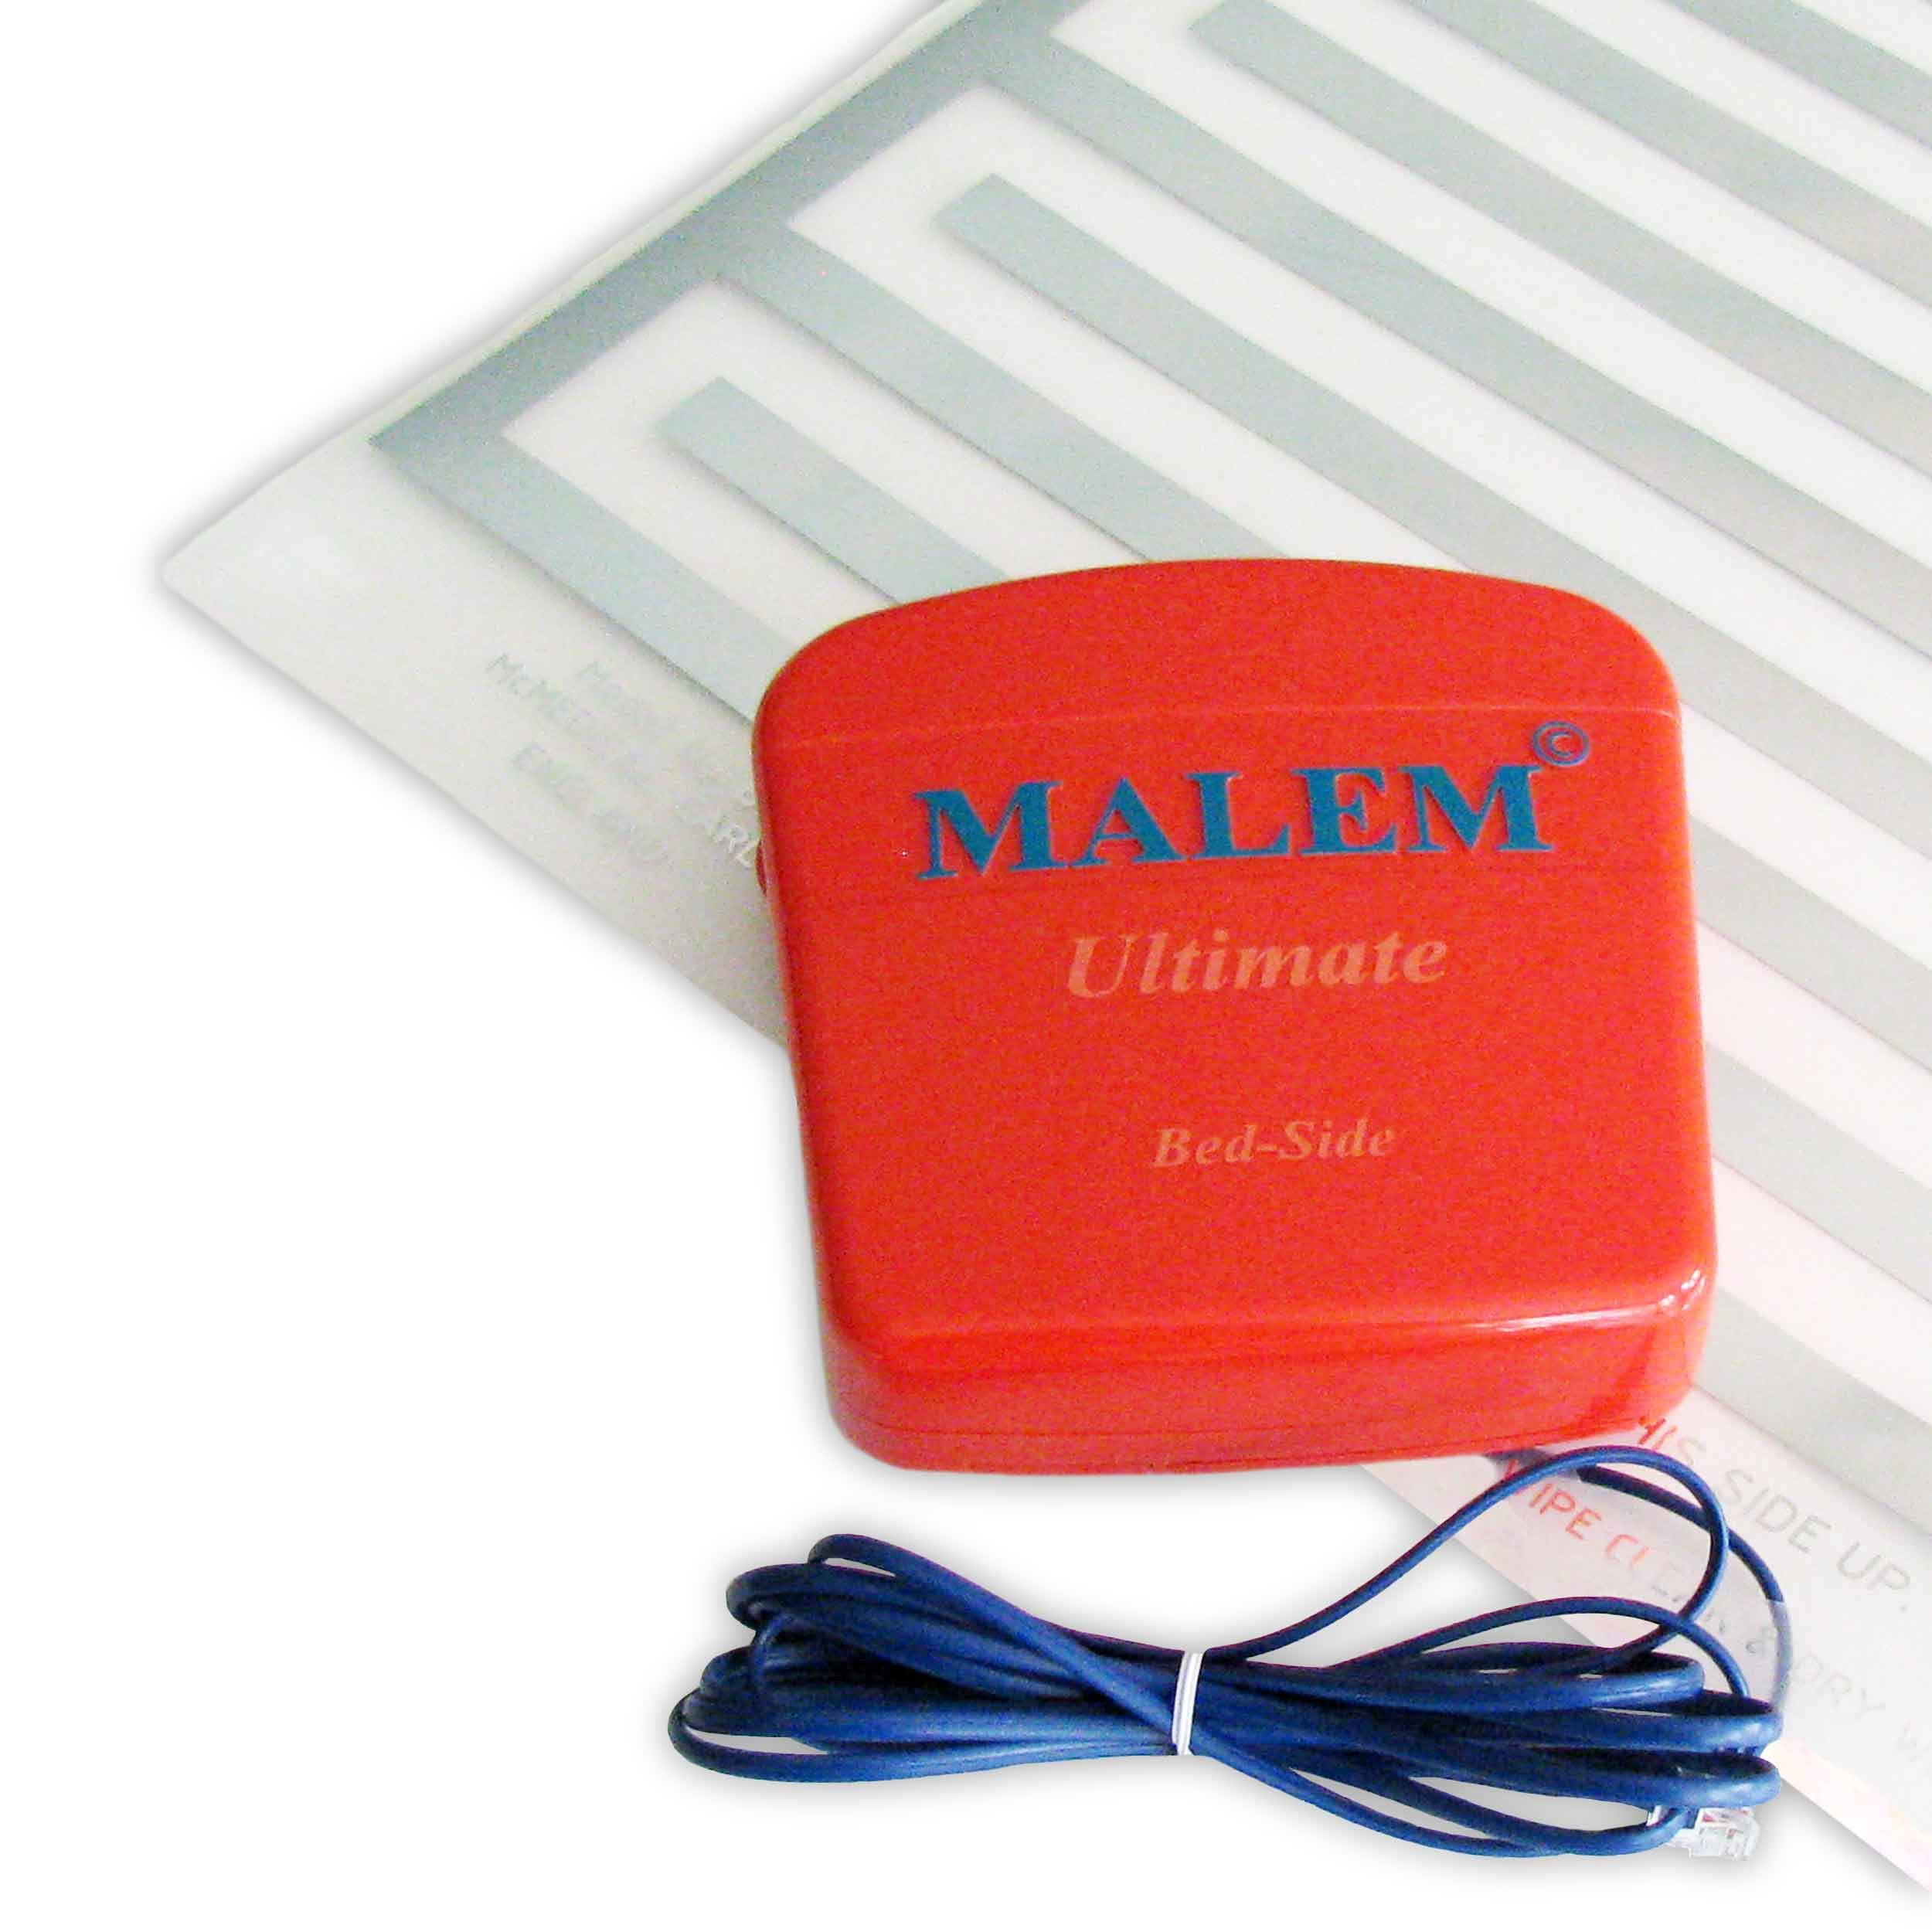 Malem Bed-Side Bedwetting Enuresis Alarm with Pad [Health and Beauty] by Malem (Image #1)